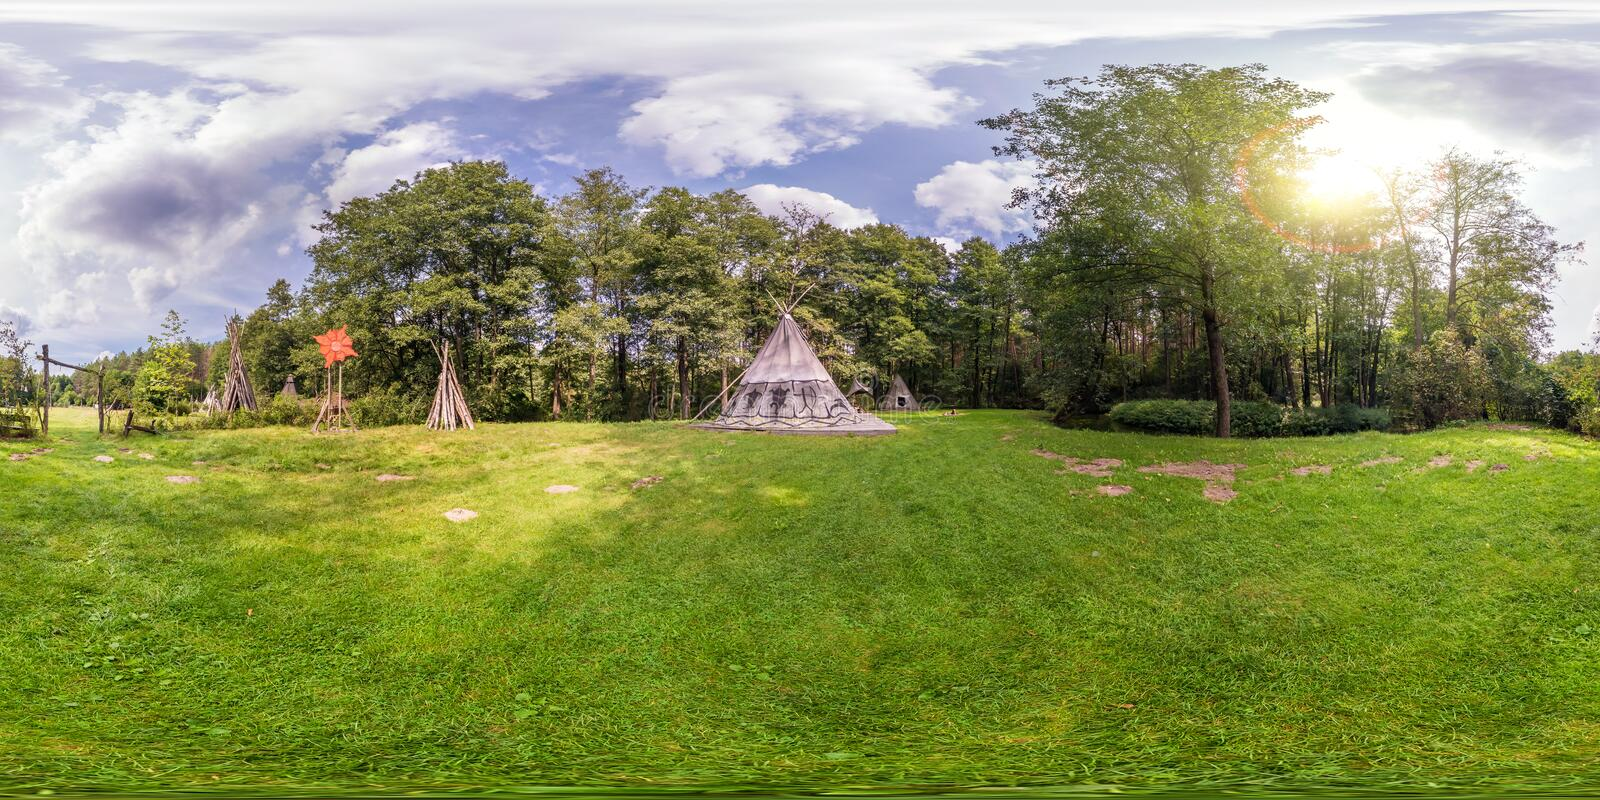 Full seamless spherical panorama 360 by 180 angle view near wigwam in the Indian village in forest in equirectangular projection, stock photography